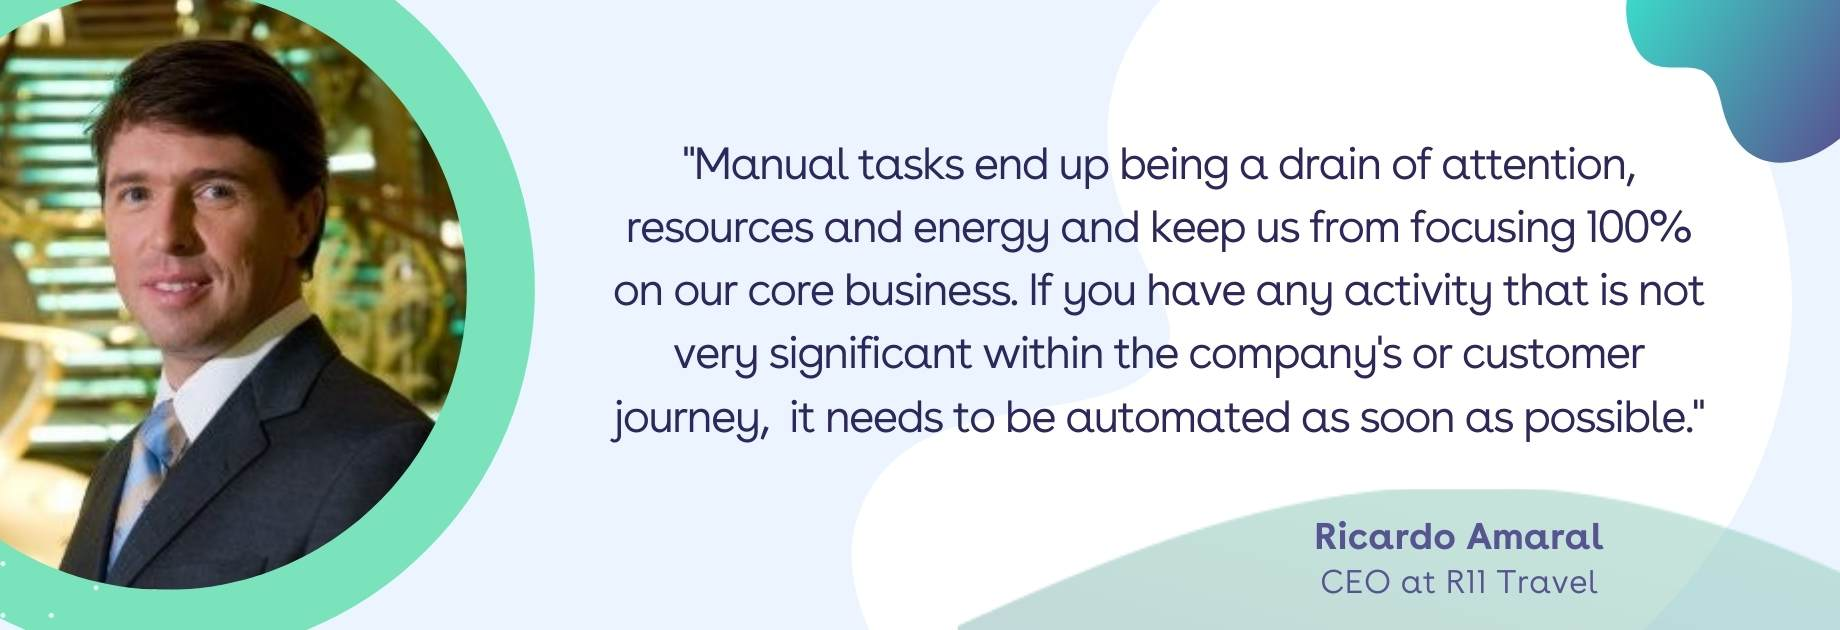 Quote Ricardo Amaral: Manual tasks end up being a drain of attention, resources and energy and keep us from focusing 100% on our core business. If you have any activity that is not very significant within the company's or customer journey, it needs to be automated as soon as possible.